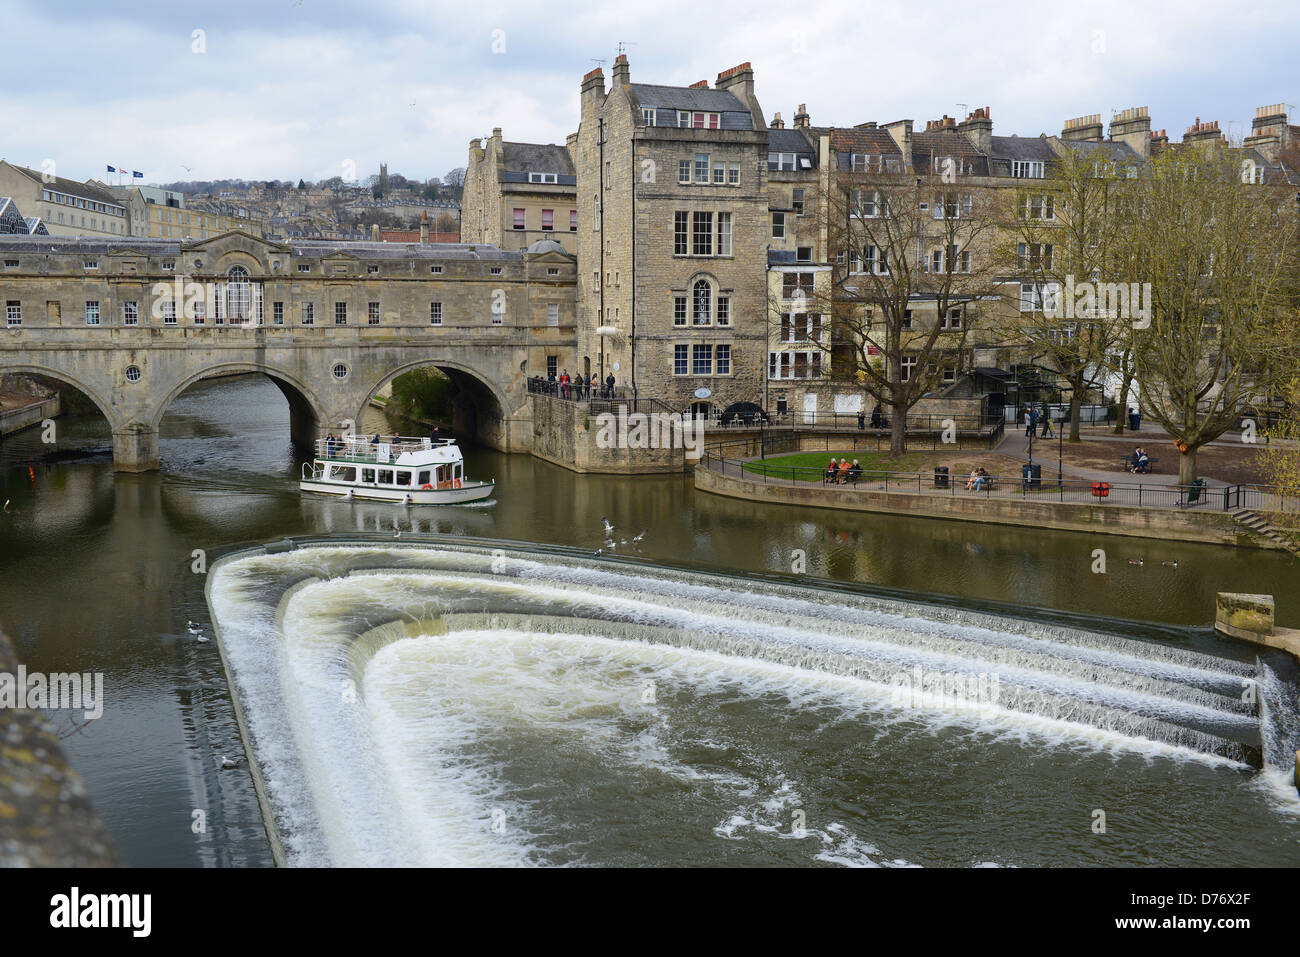 The River Avon and weir at Bath - Stock Image